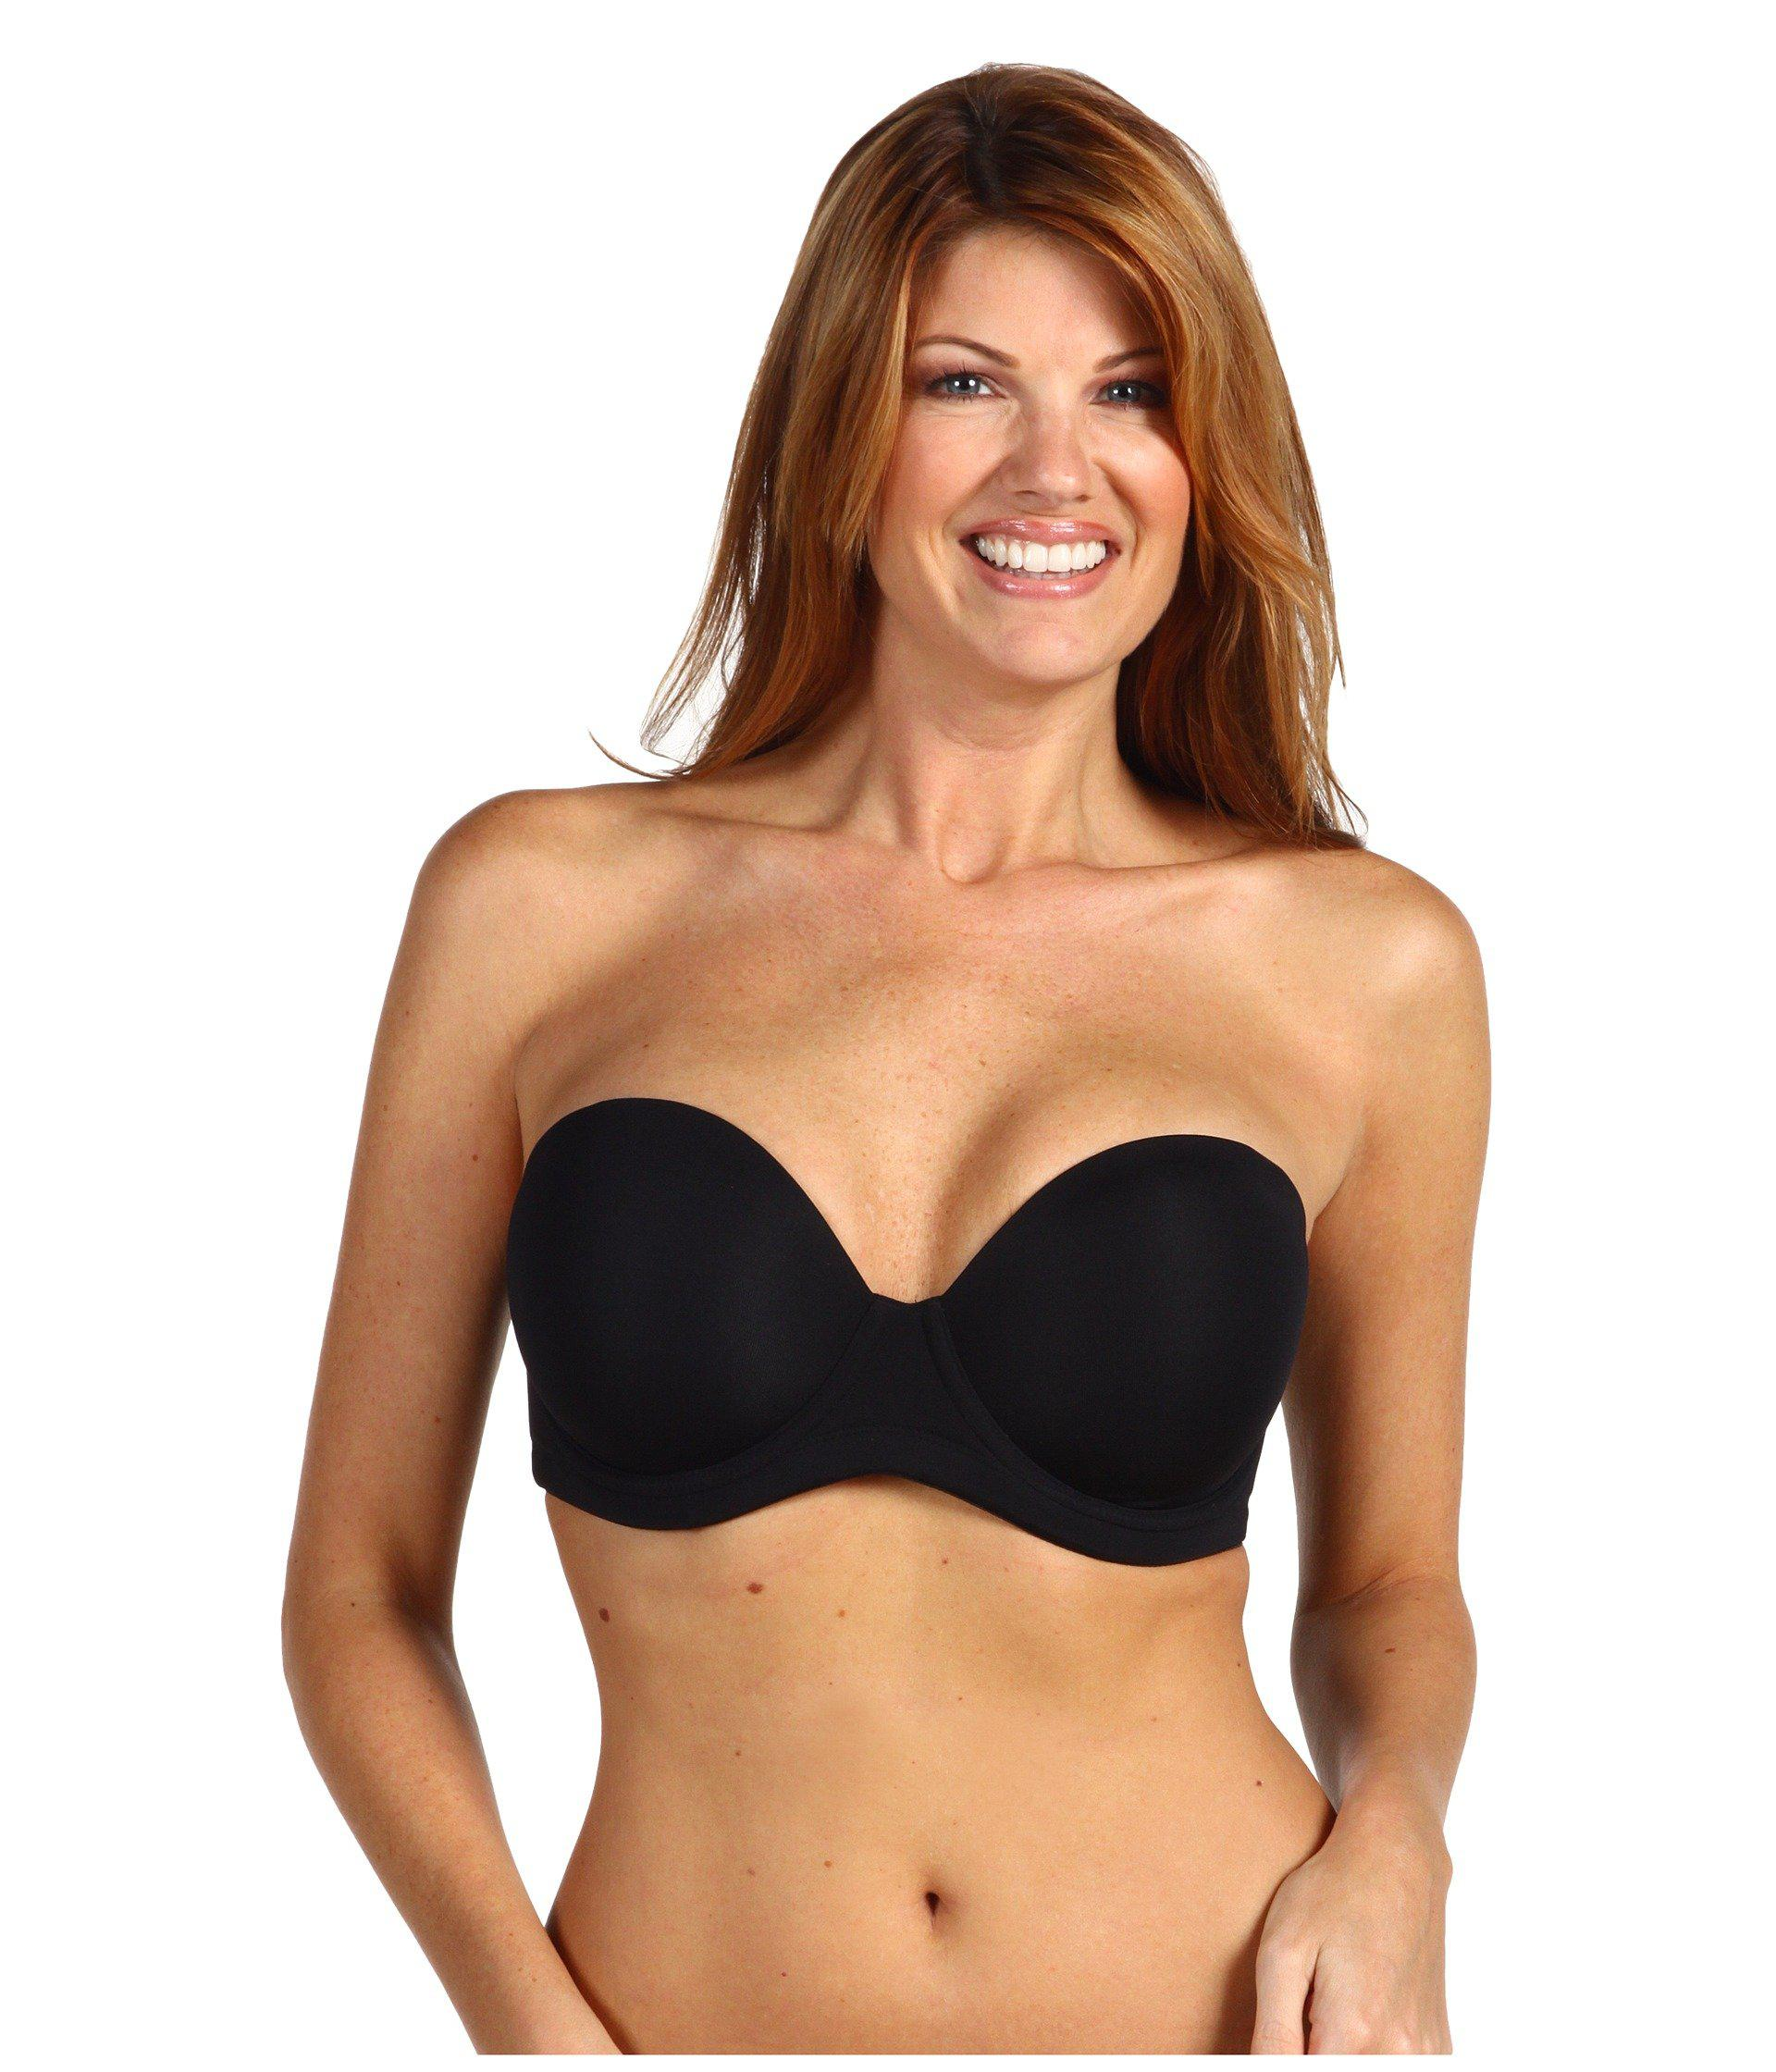 b6cbc9fee40 Lyst - Wacoal Red Carpet Full-figure Strapless Bra in Black - Save 4%